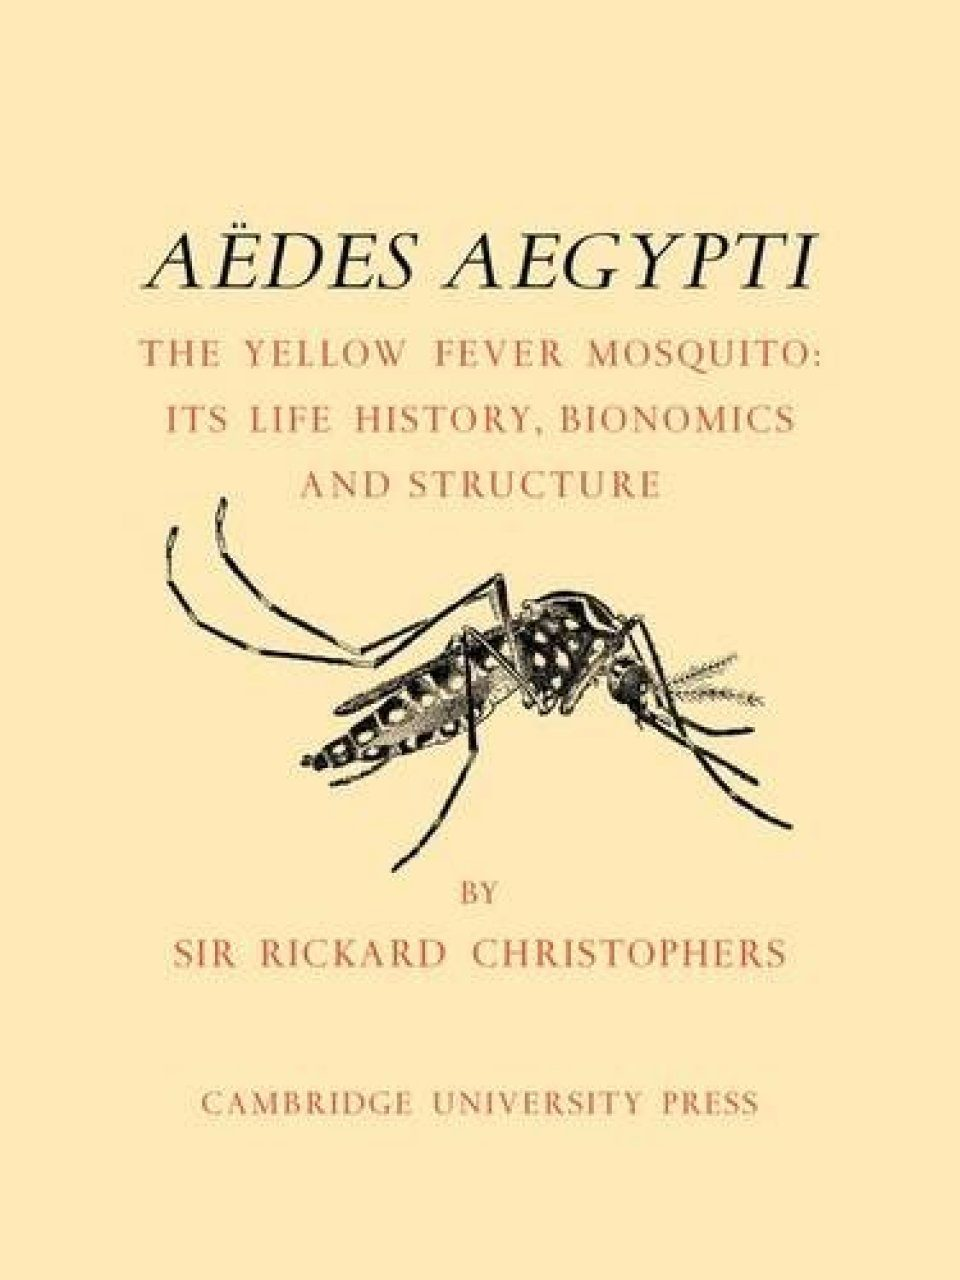 Aedes Aegypti the Yellow Fever Mosquito